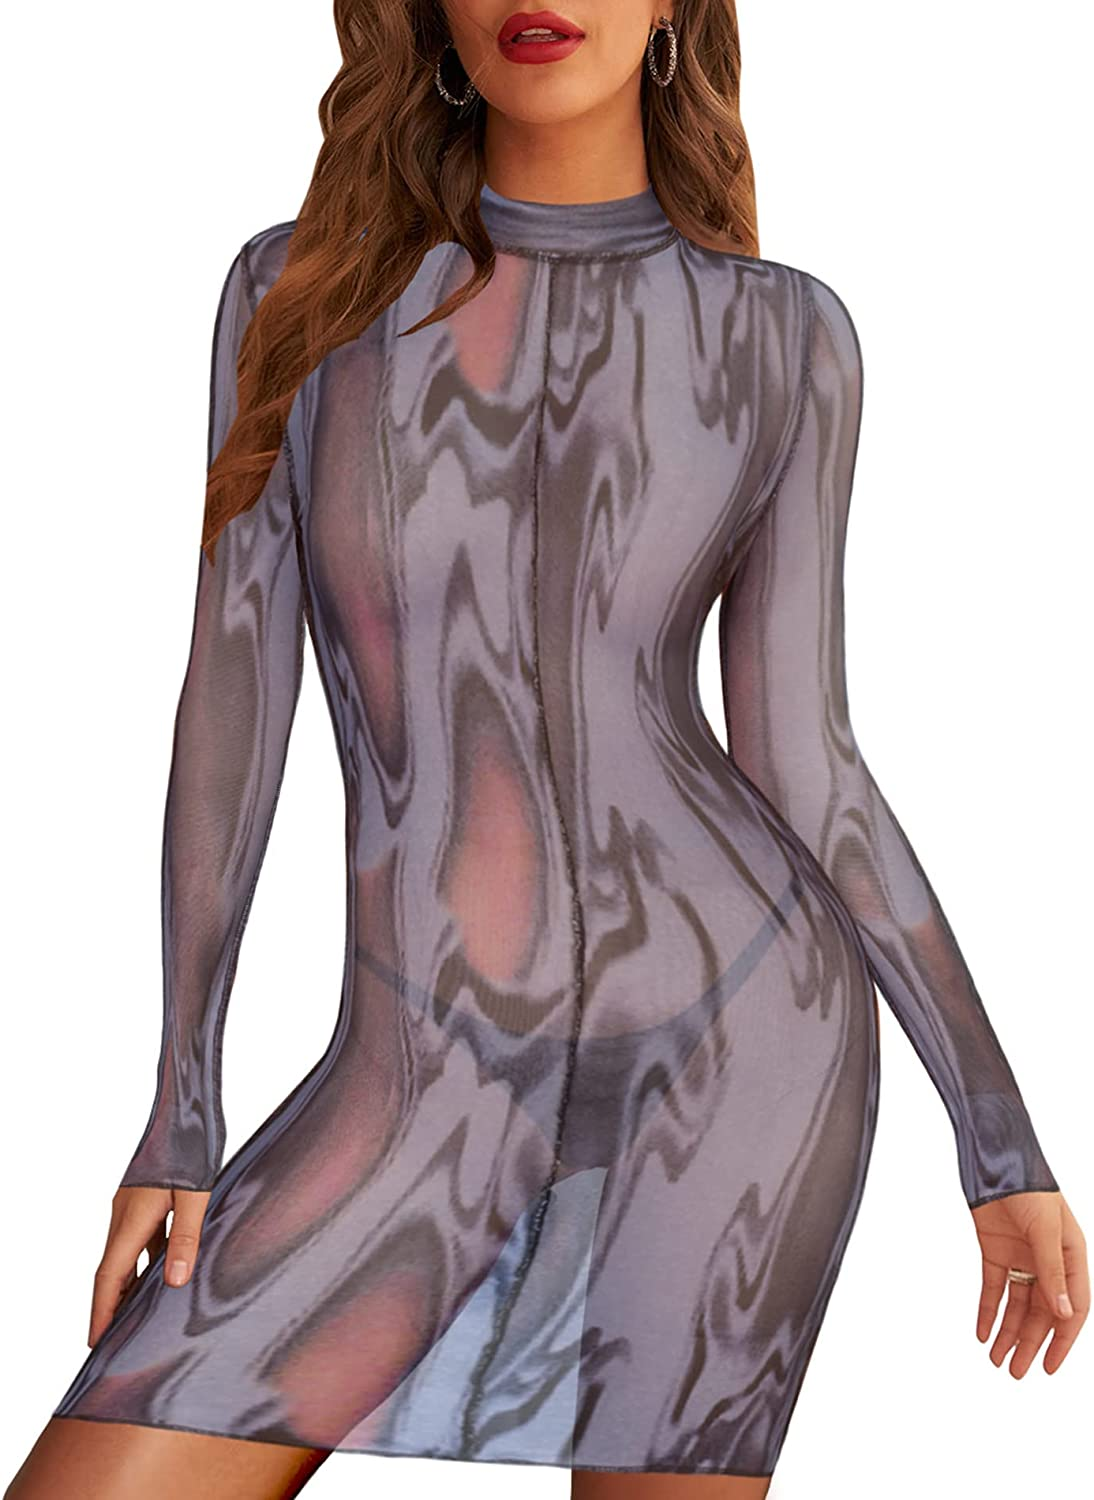 Deer Lady Womens Sexy Mesh See Through Dress Long Sleeve Bodycon Party Club Dress